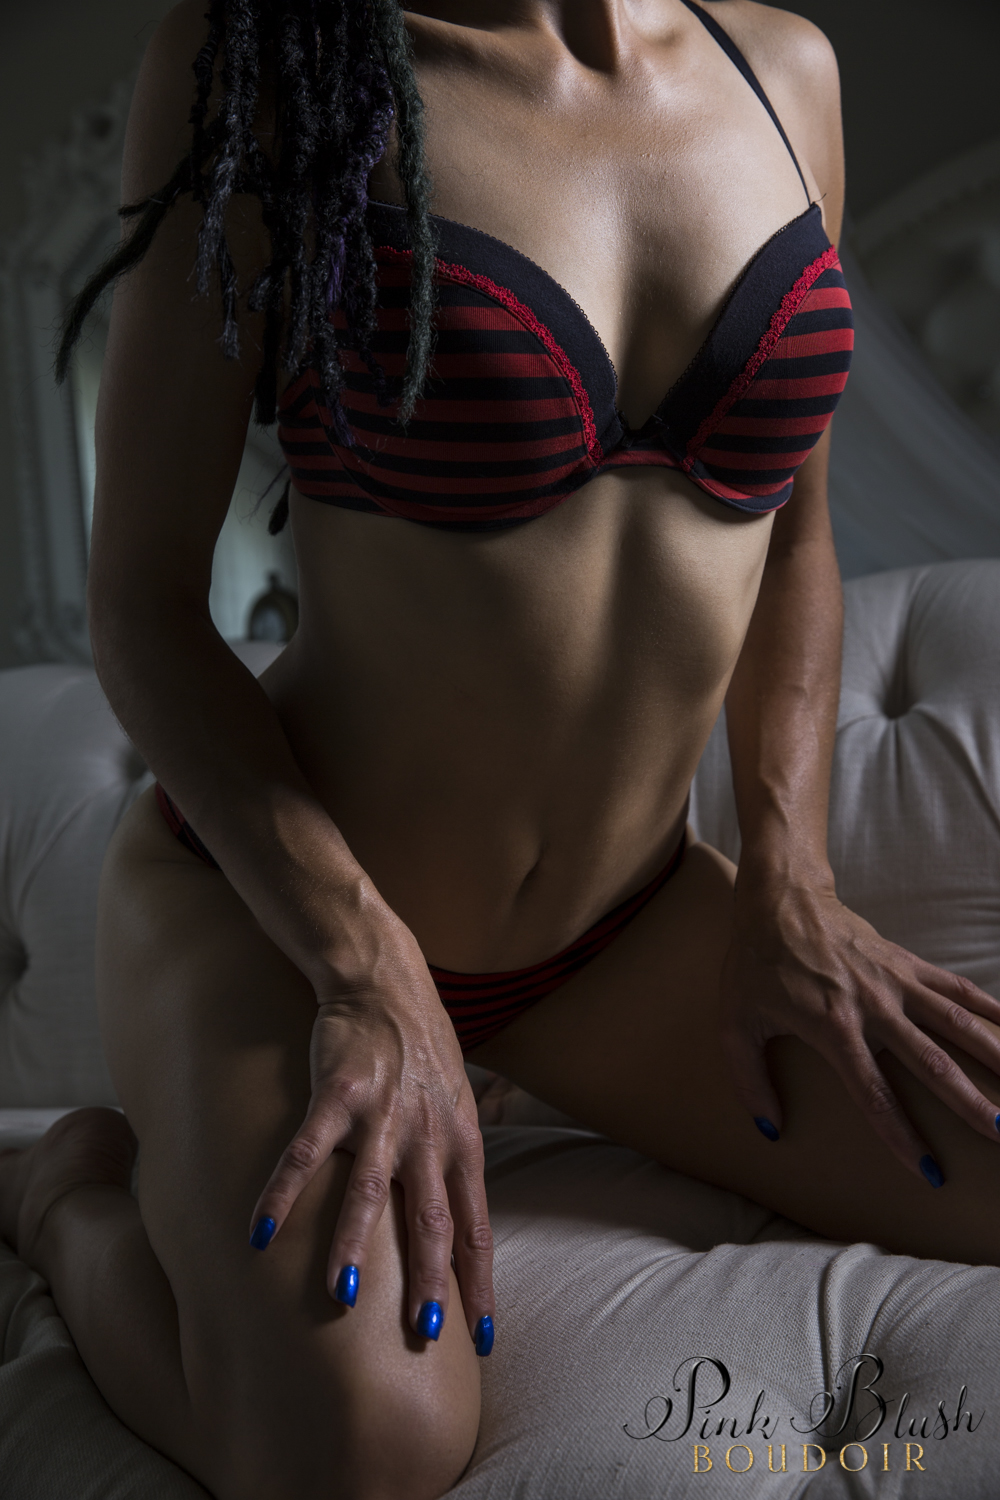 Boudoir Photography Edmonton, a woman's body dramatic lighting black and red bra and panty set